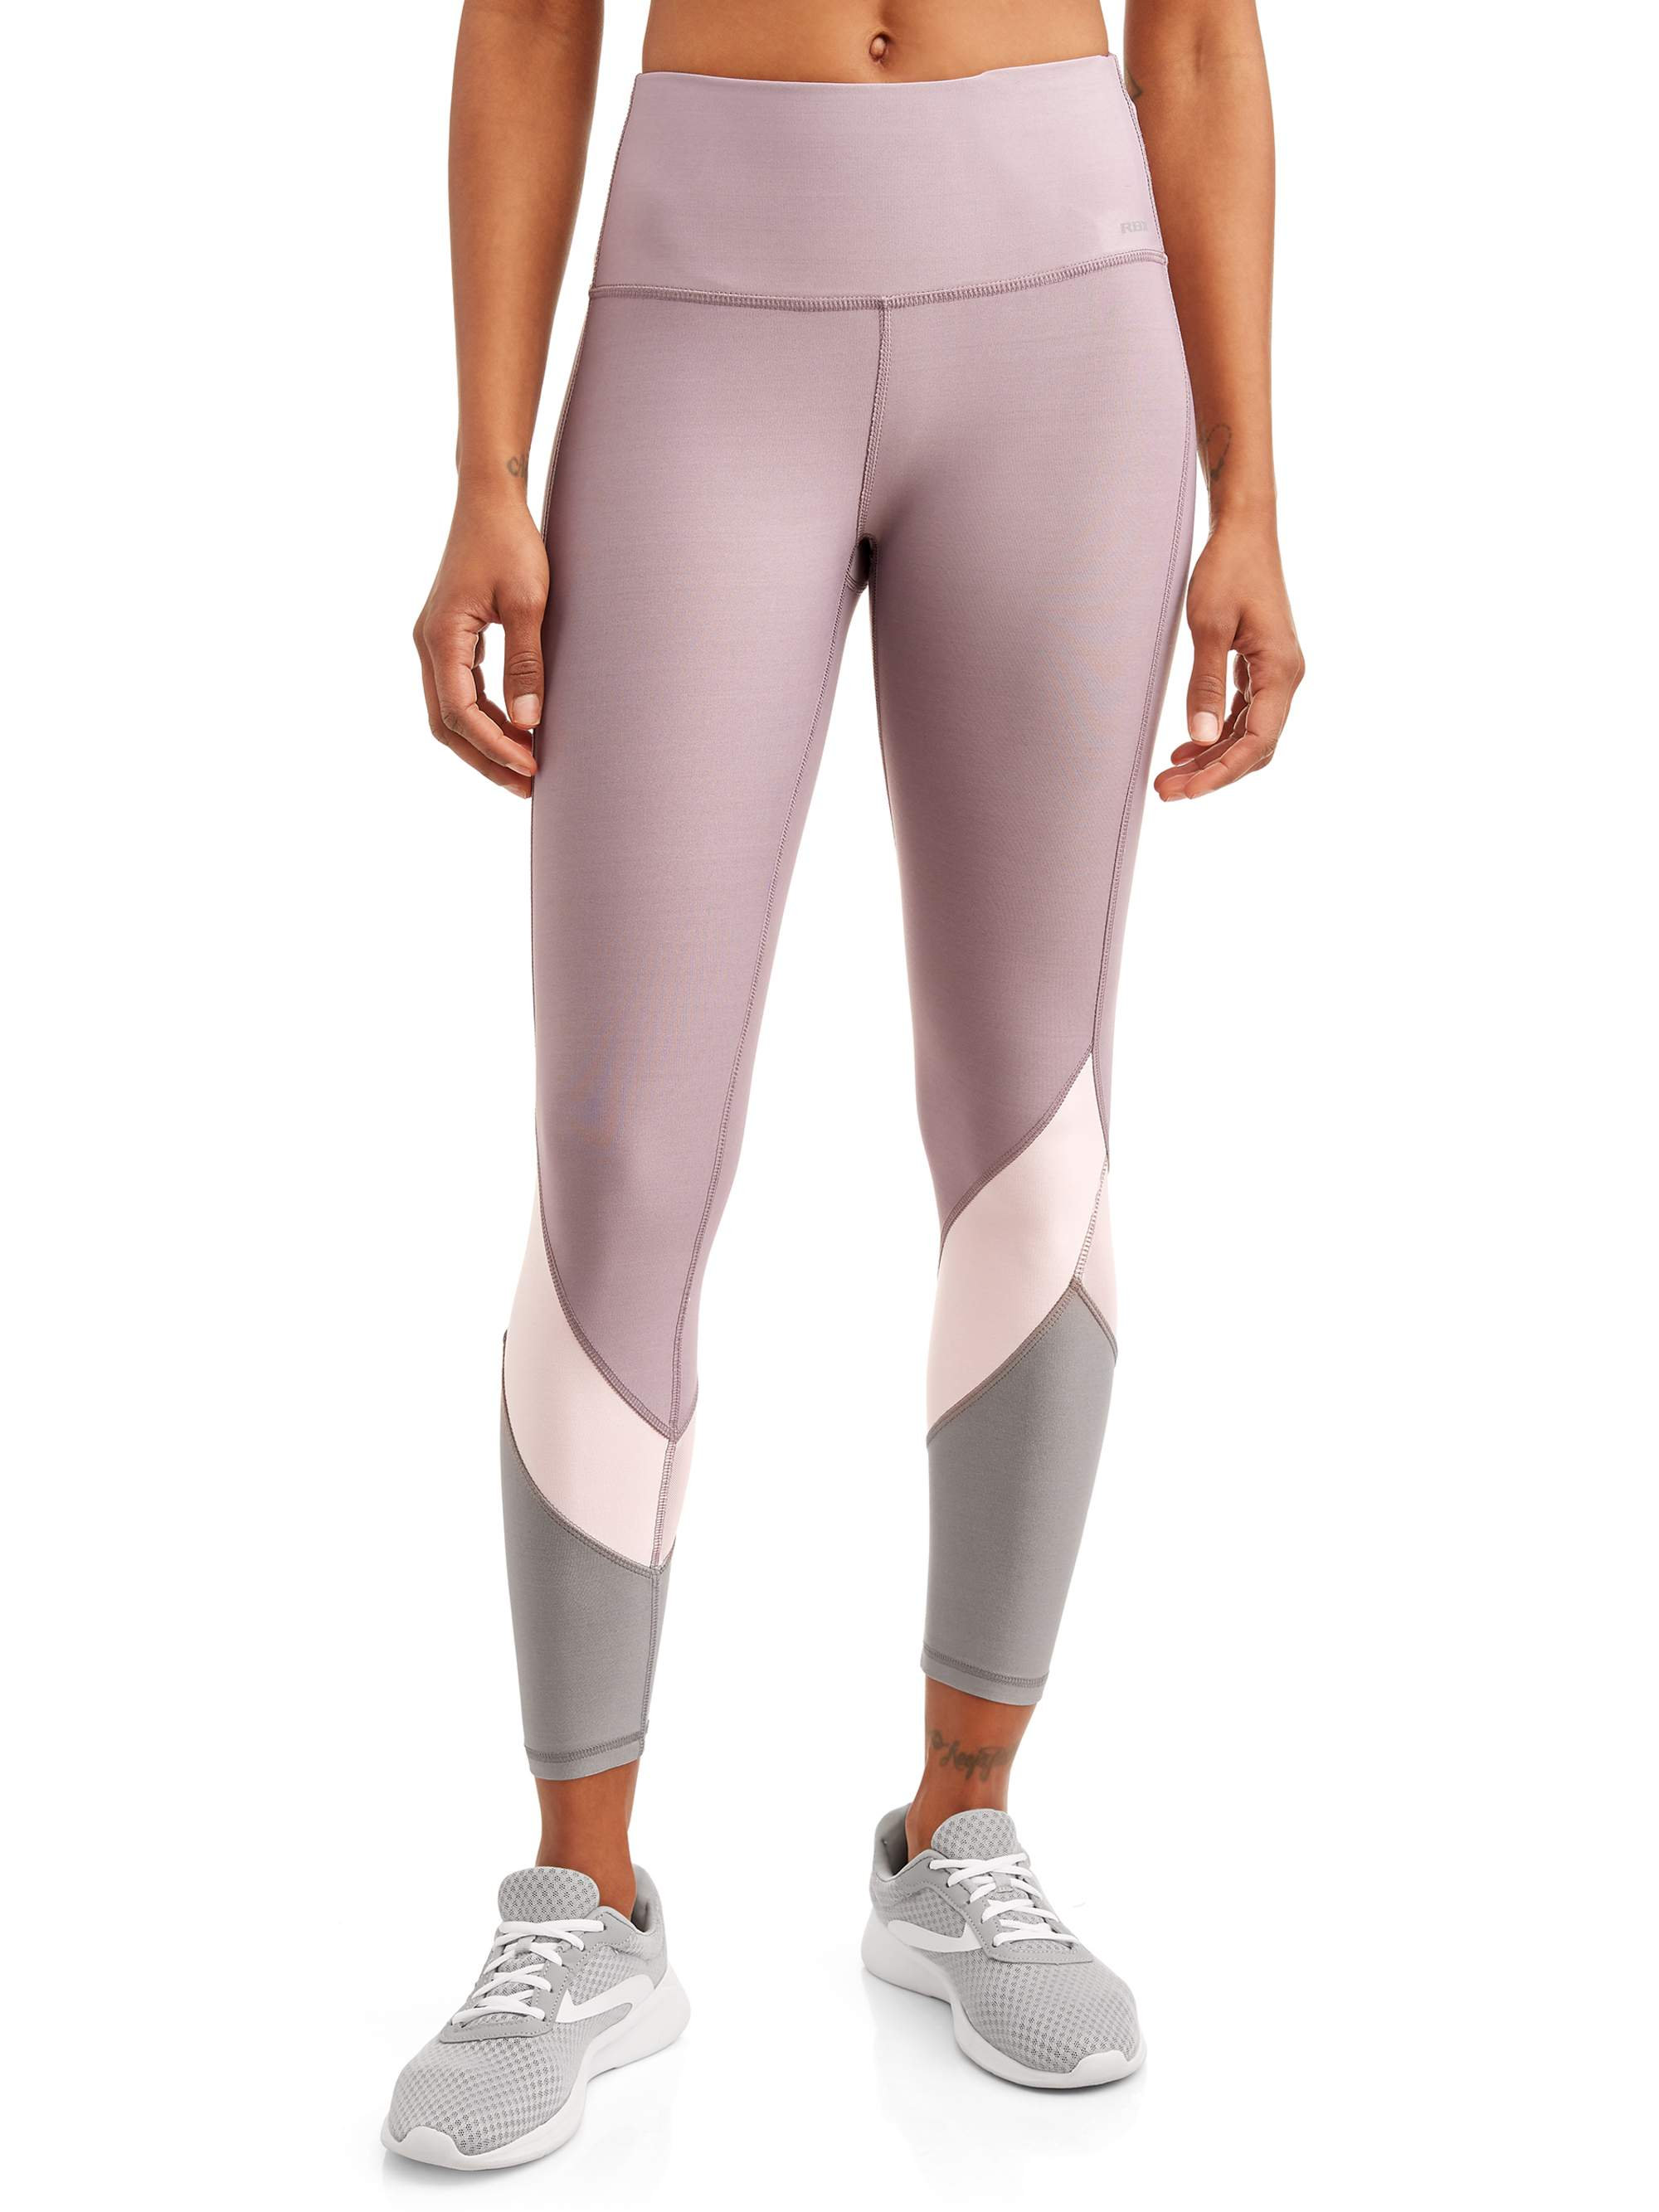 Women's Active 25-7/8 Color Block Legging